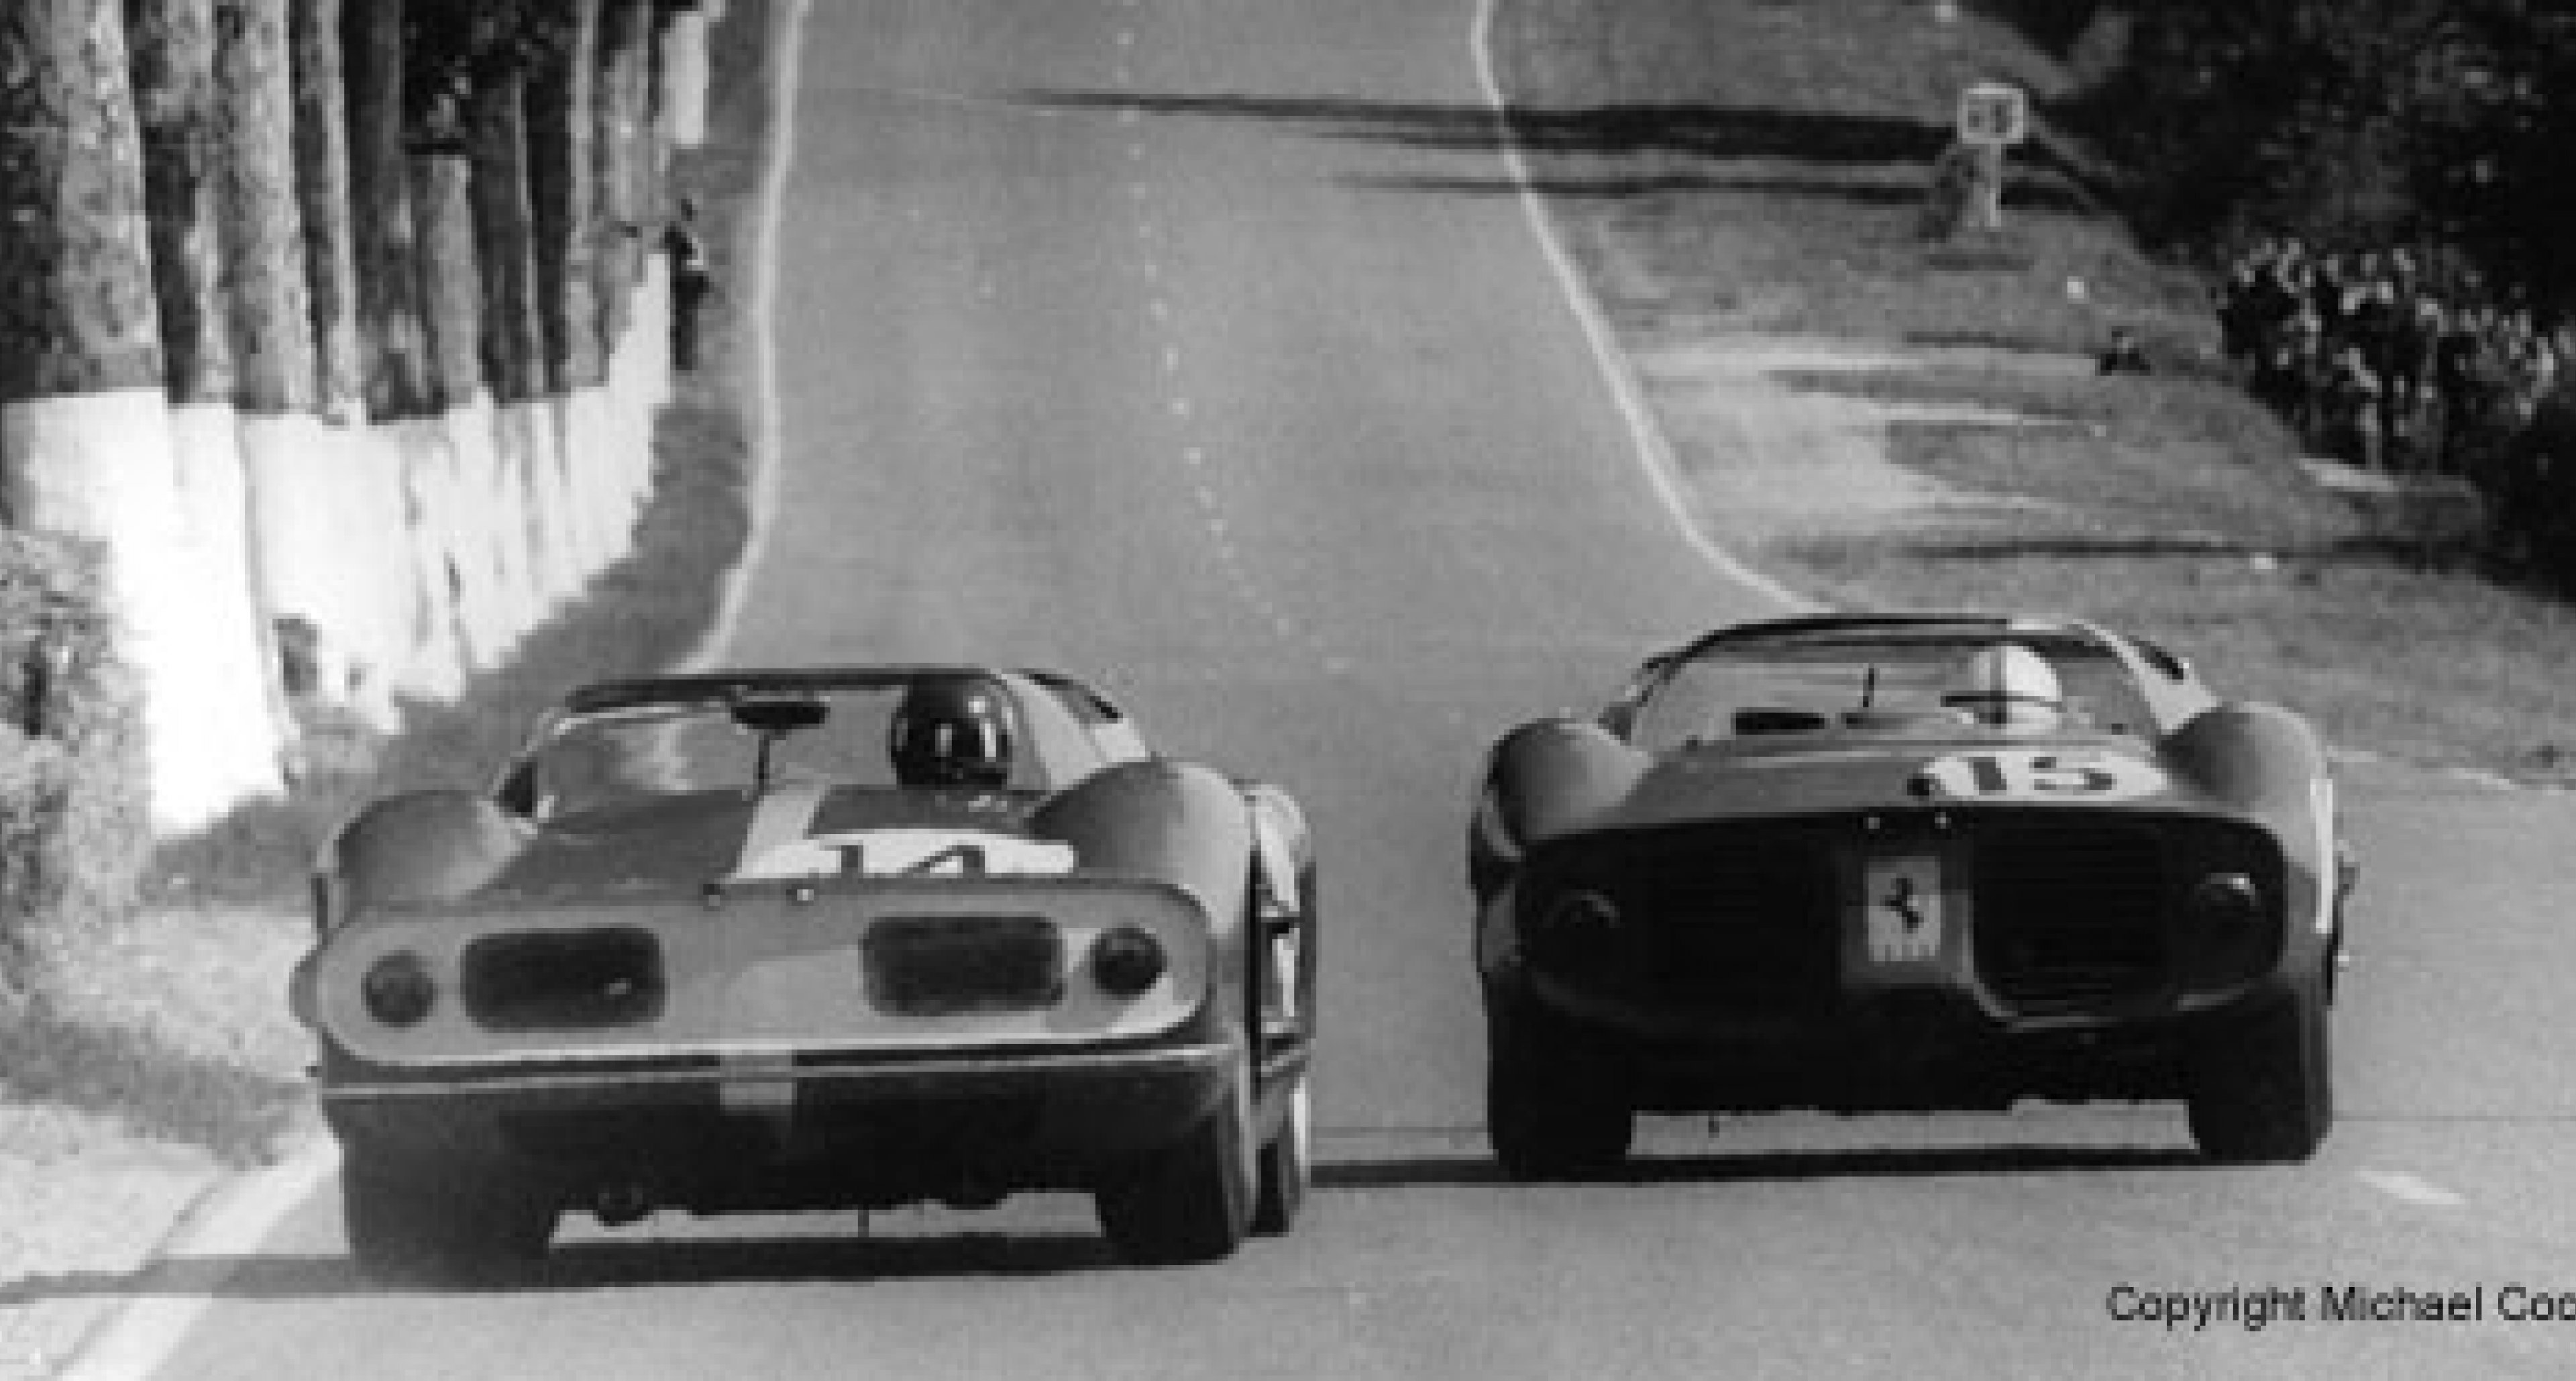 2002 Le Mans Classic: This weekend!